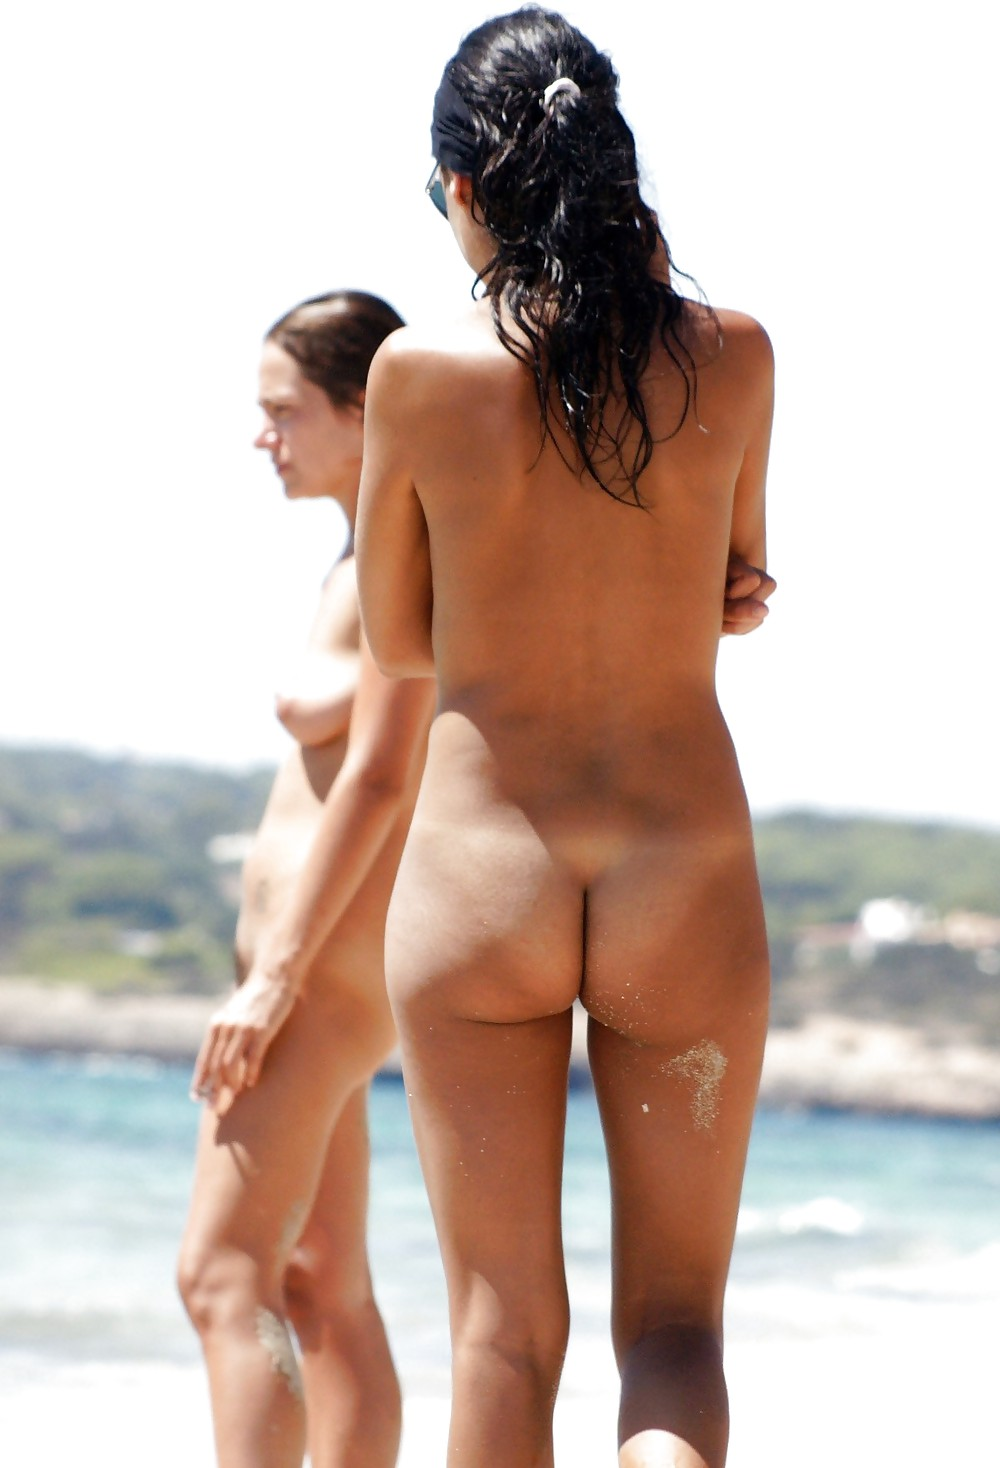 Beautiful Day At The Beach 31 by Voyeur TROC Porn Pics #20450939